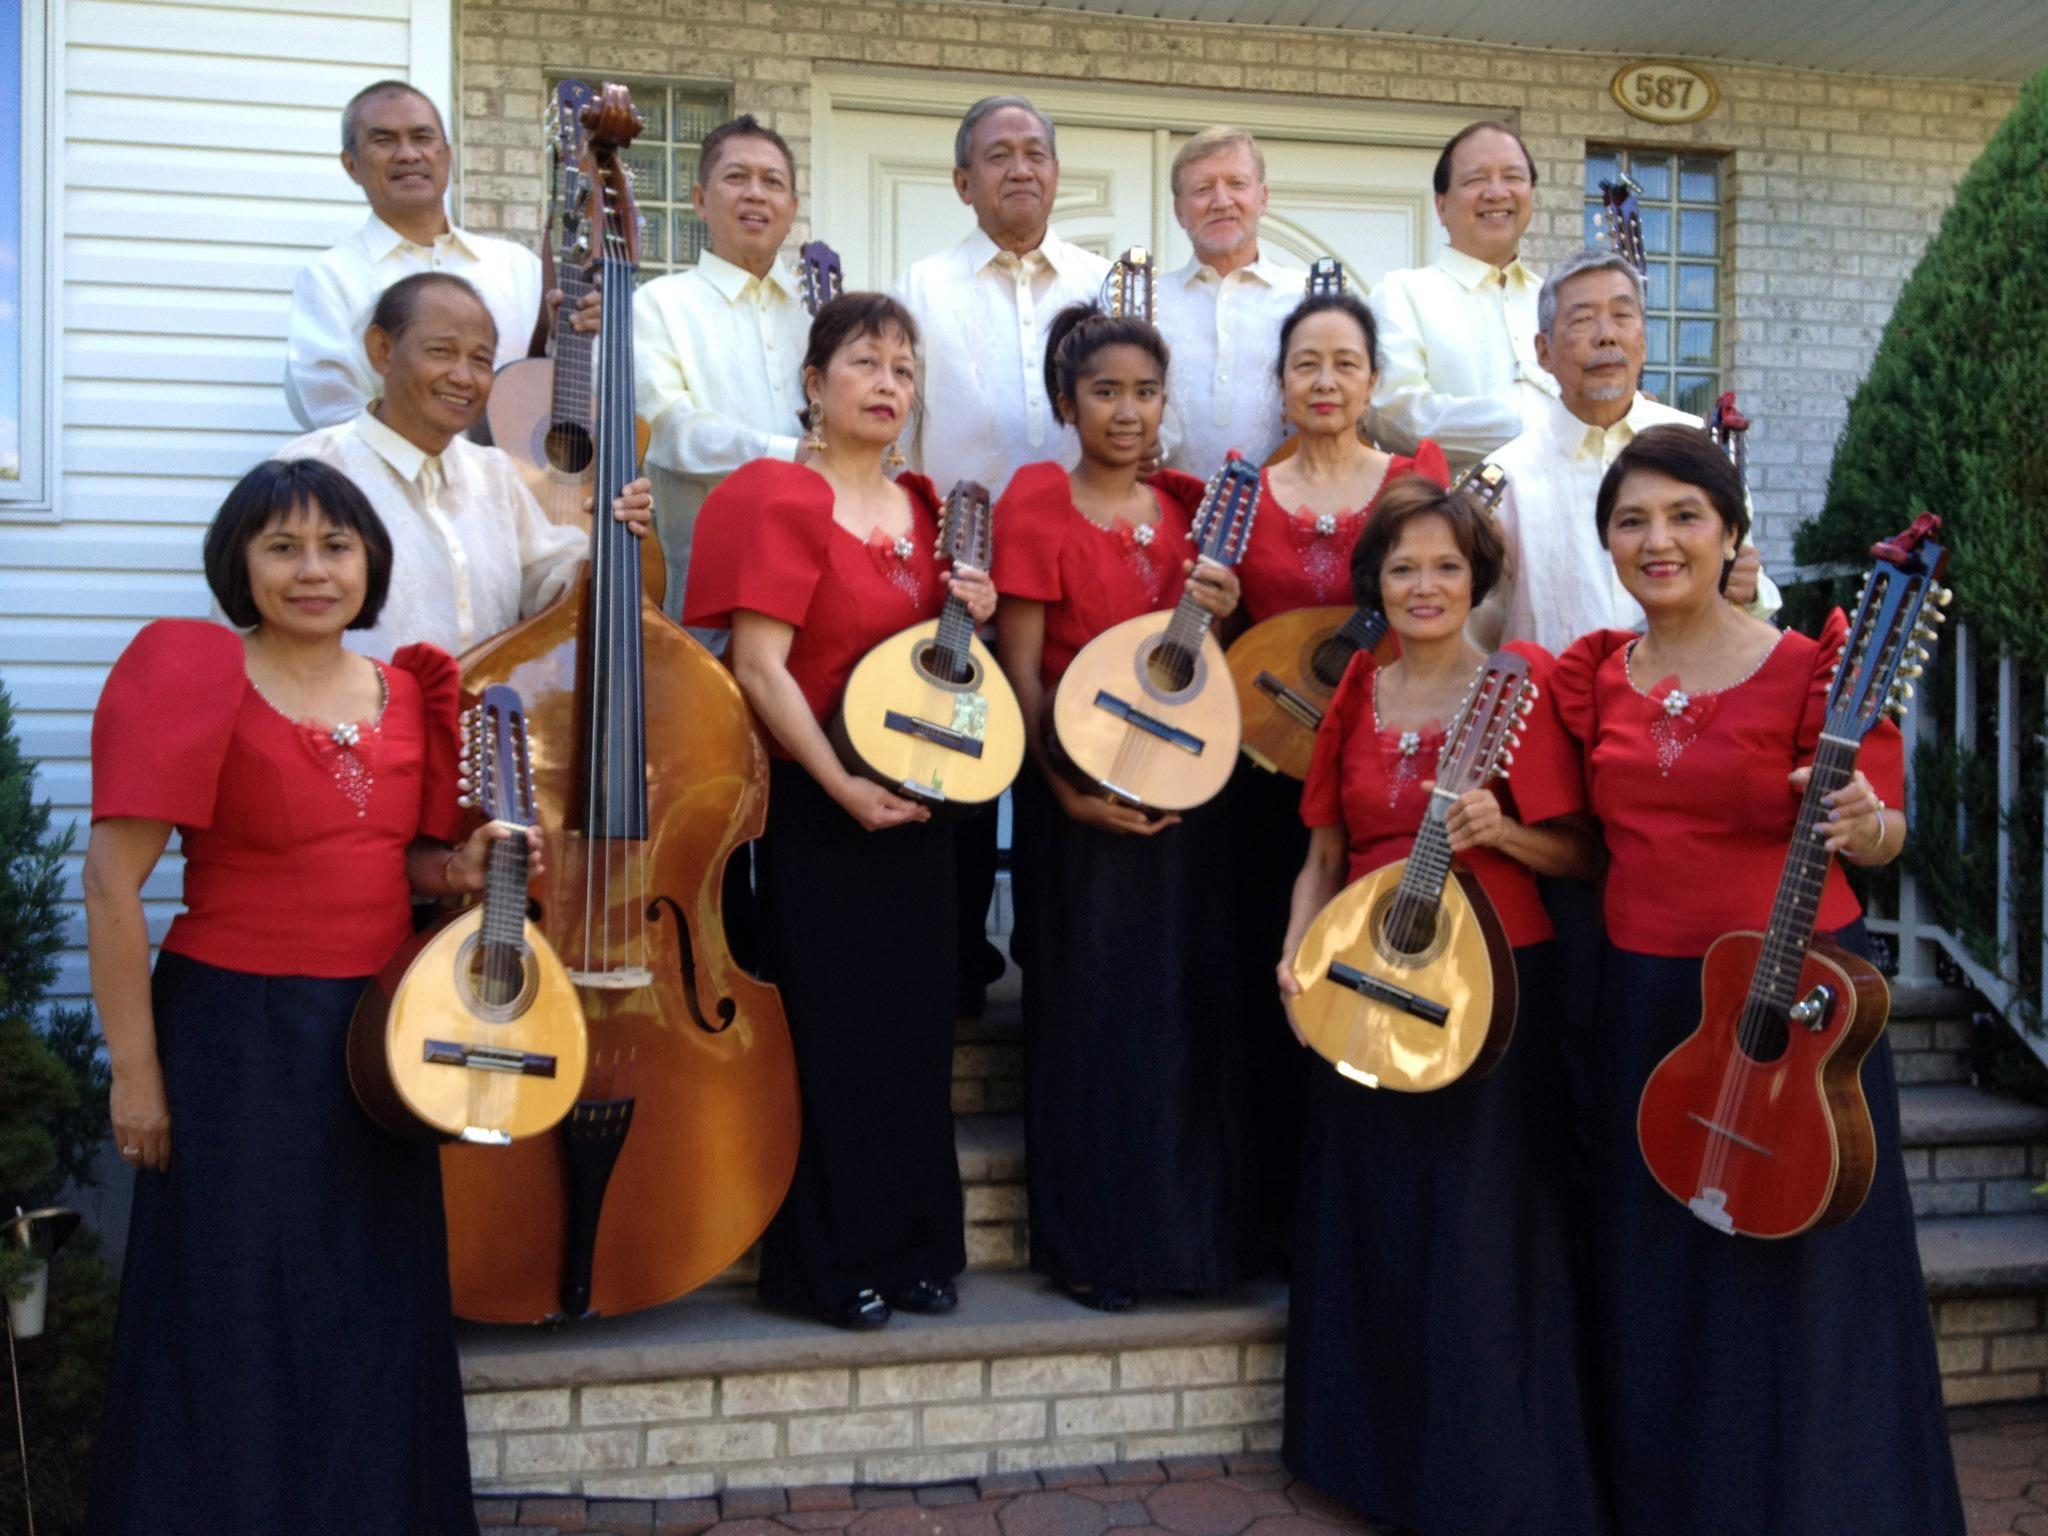 Philippine String Ensemble Honors Late Local Soprano at 20th Anniversary Concert on Nov 17 at Drew University Concert Hall